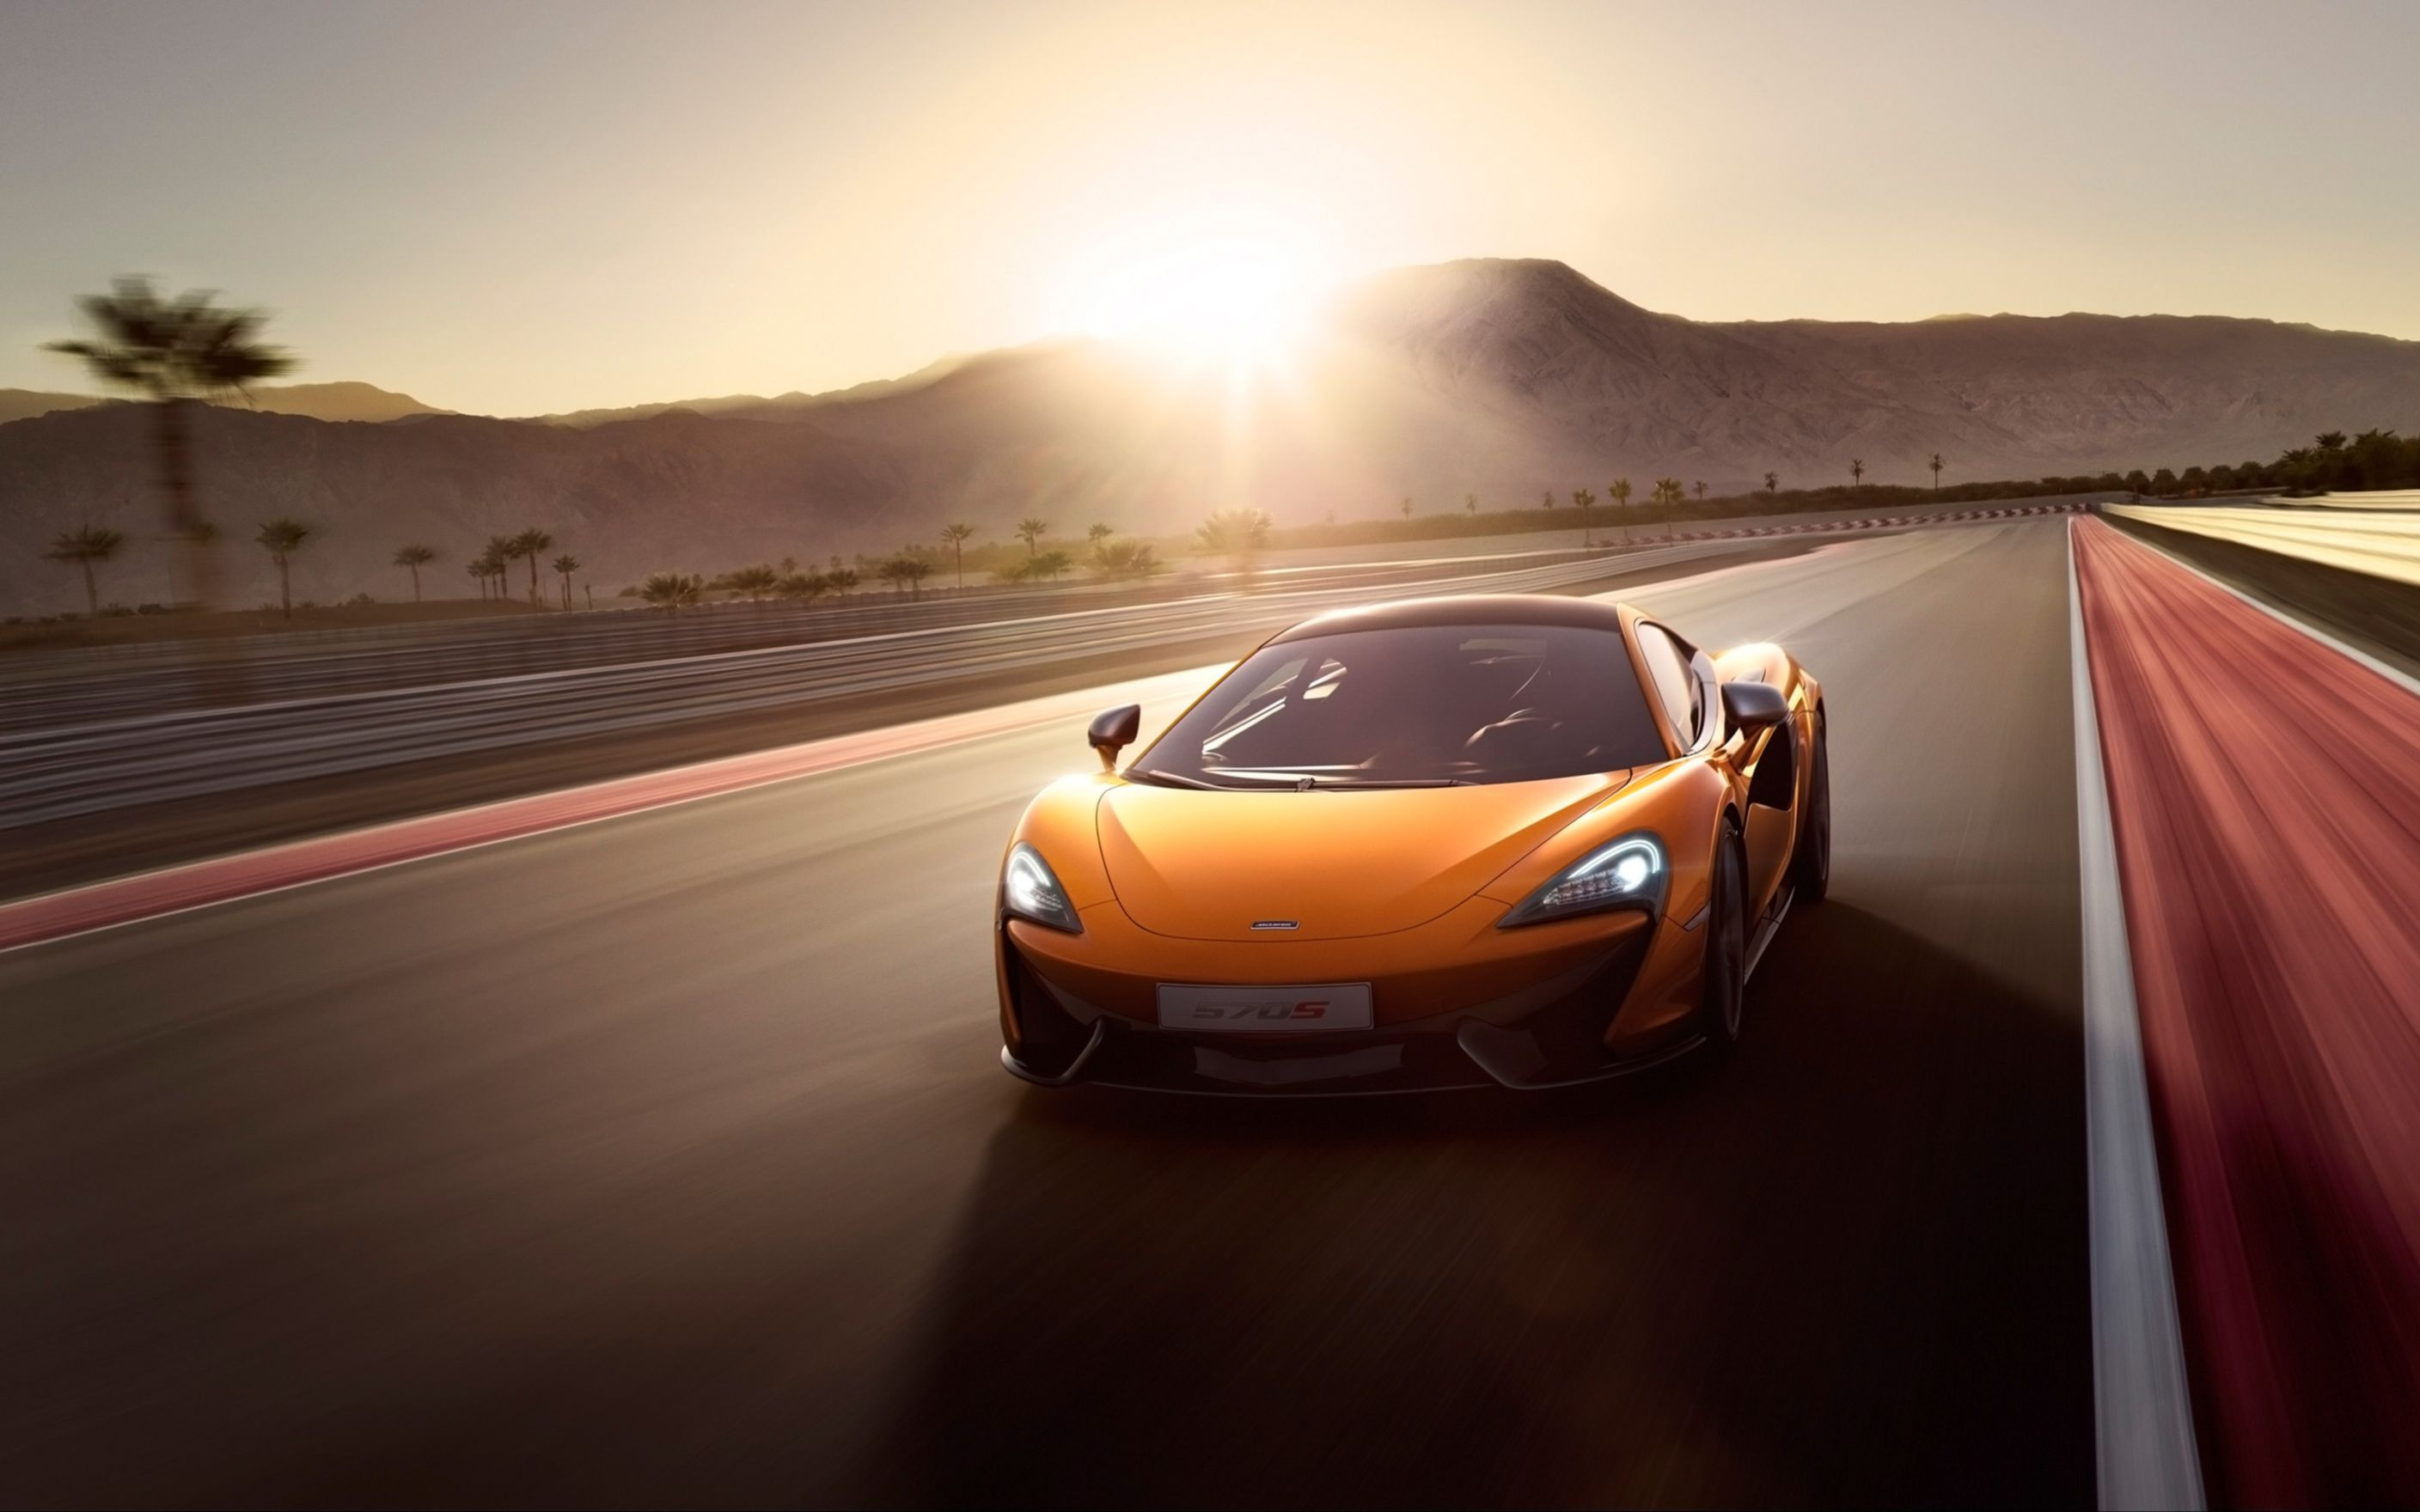 Download free HD 2015 Mclaren 570s Wide Wallpaper, image